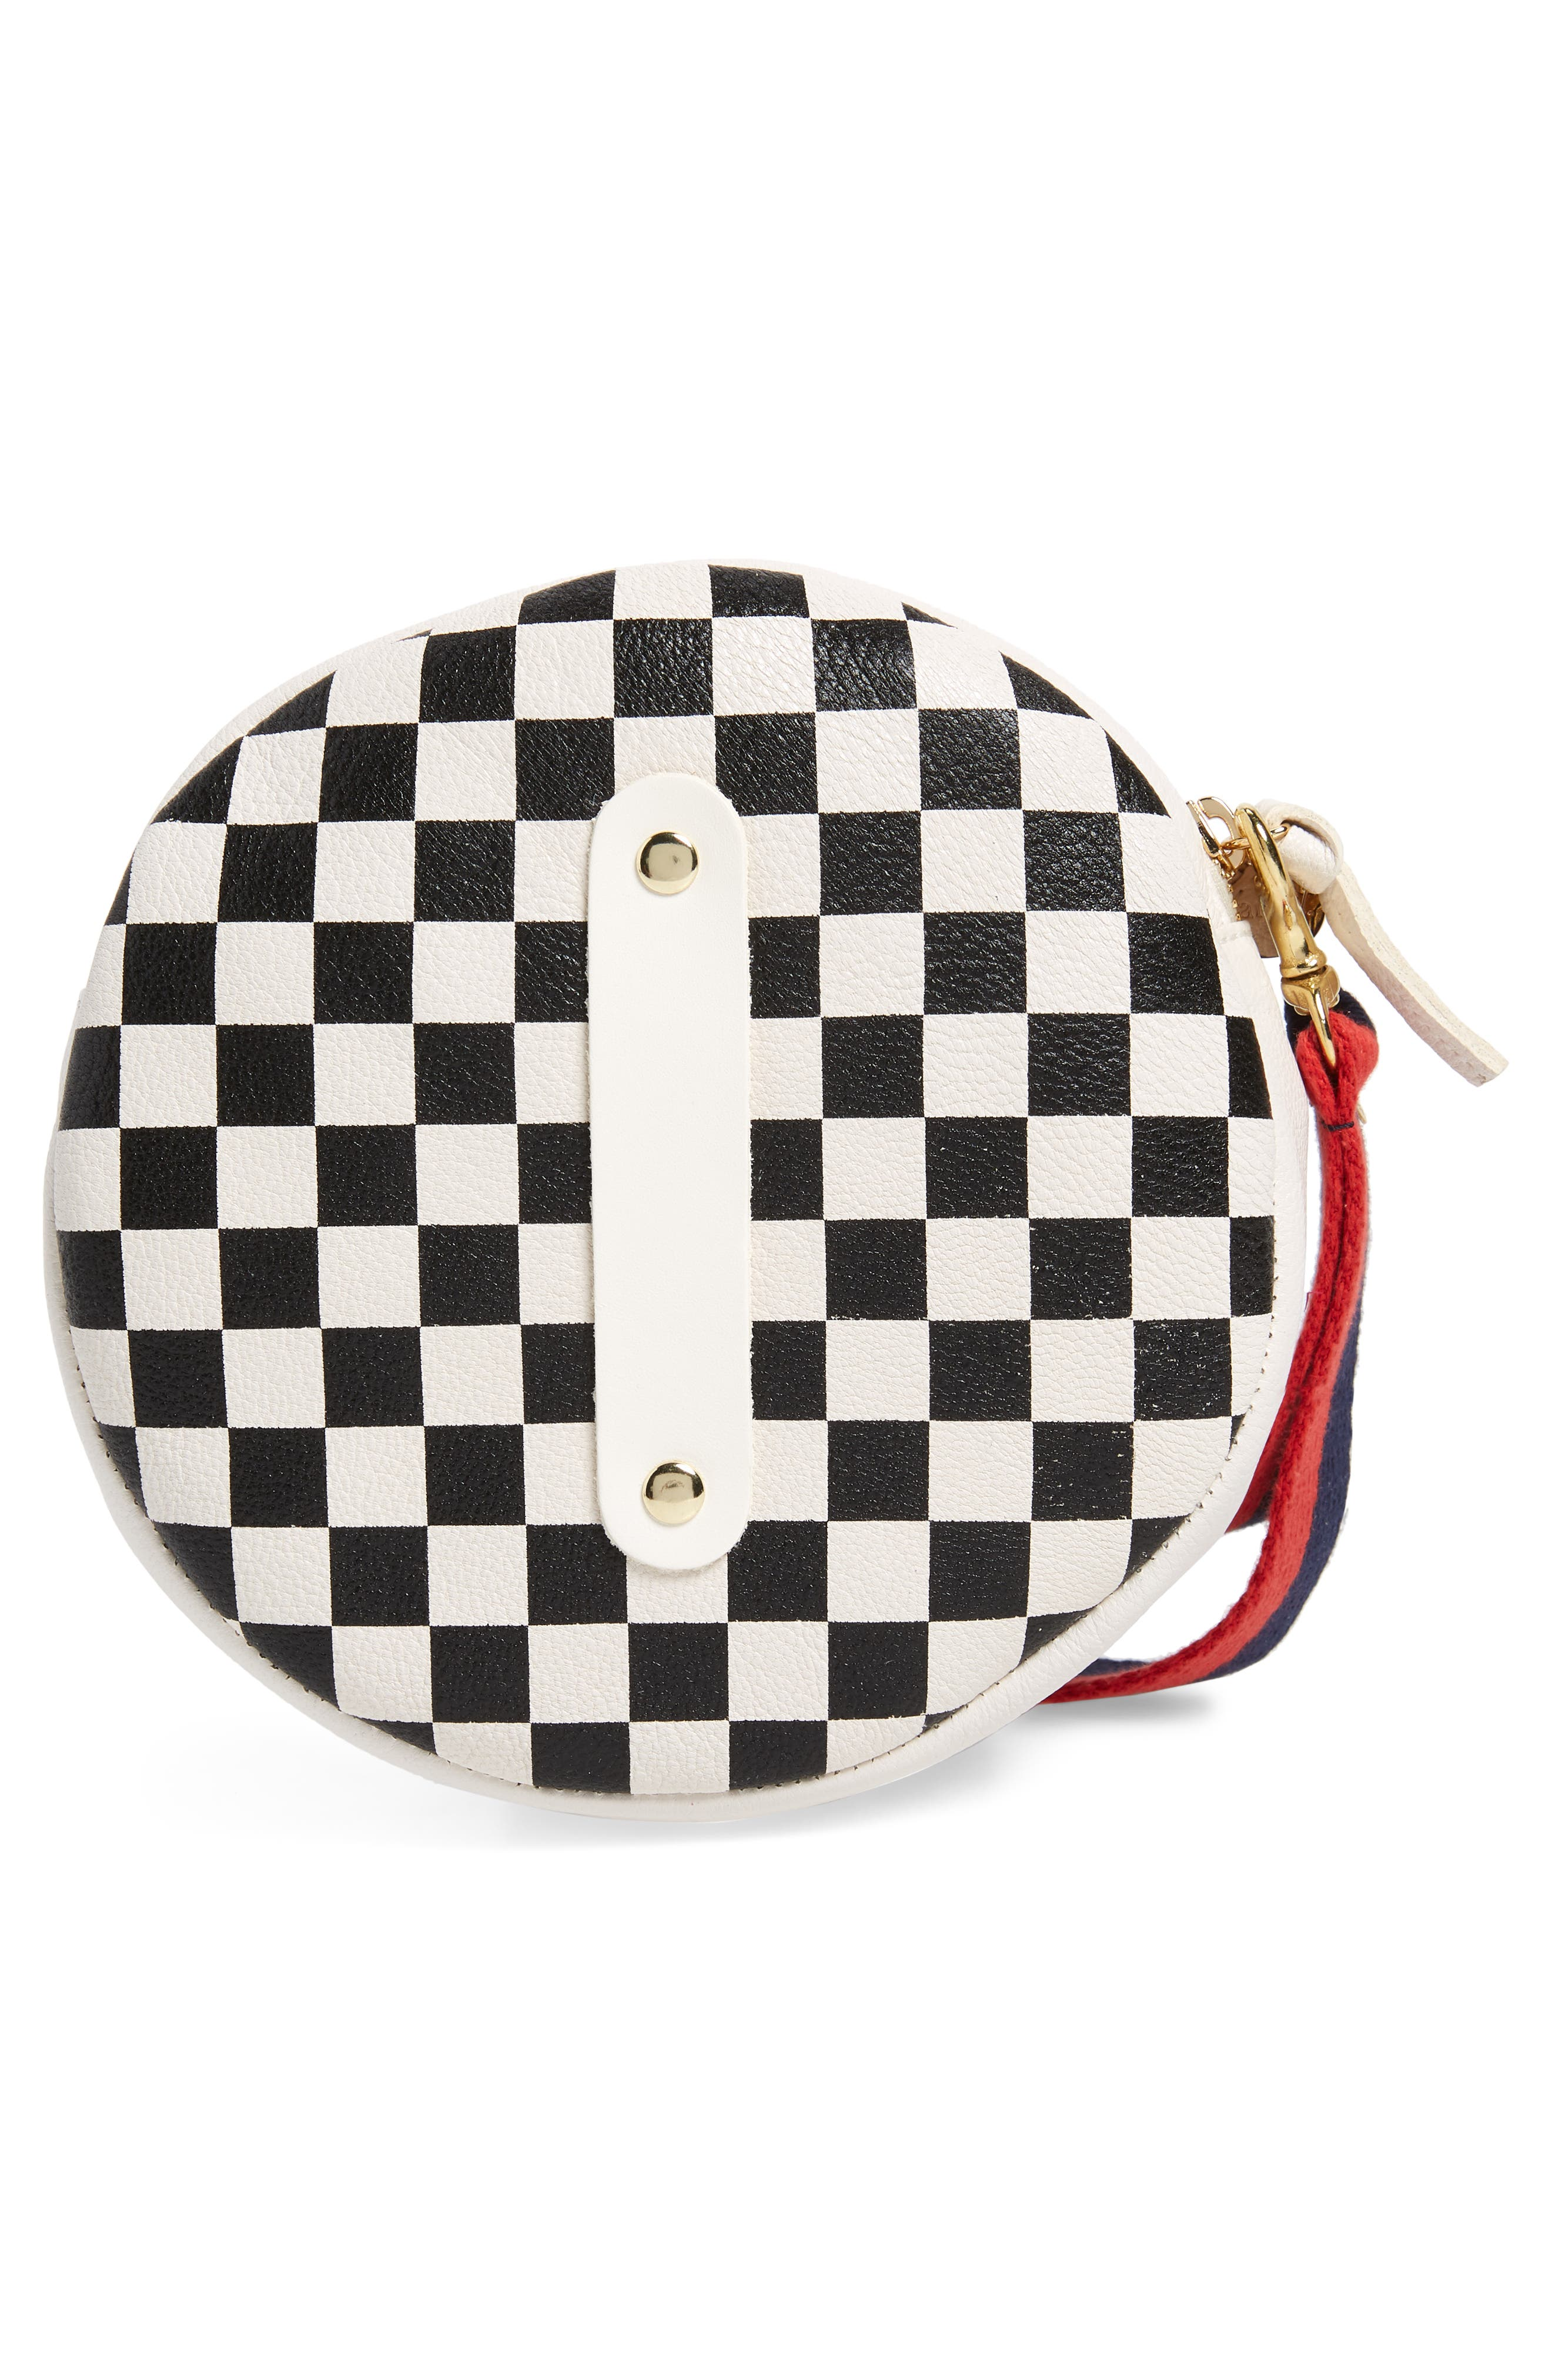 Checkered Leather Circle Clutch,                             Alternate thumbnail 3, color,                             001